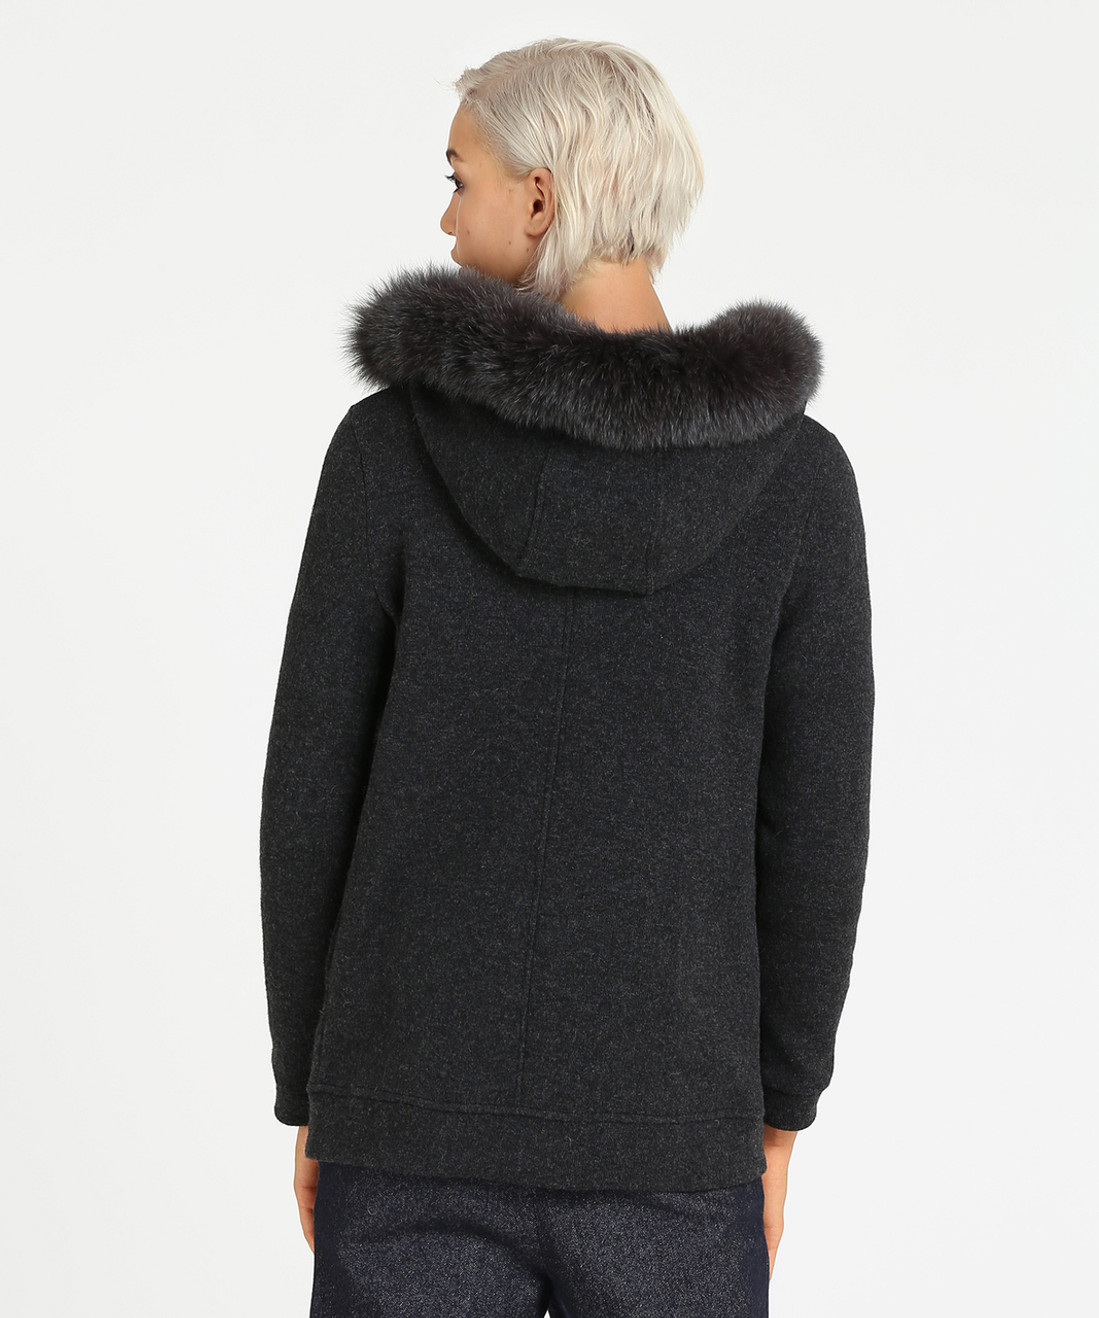 Women's Wool Cotton Hoodie - John Rich & Bros.